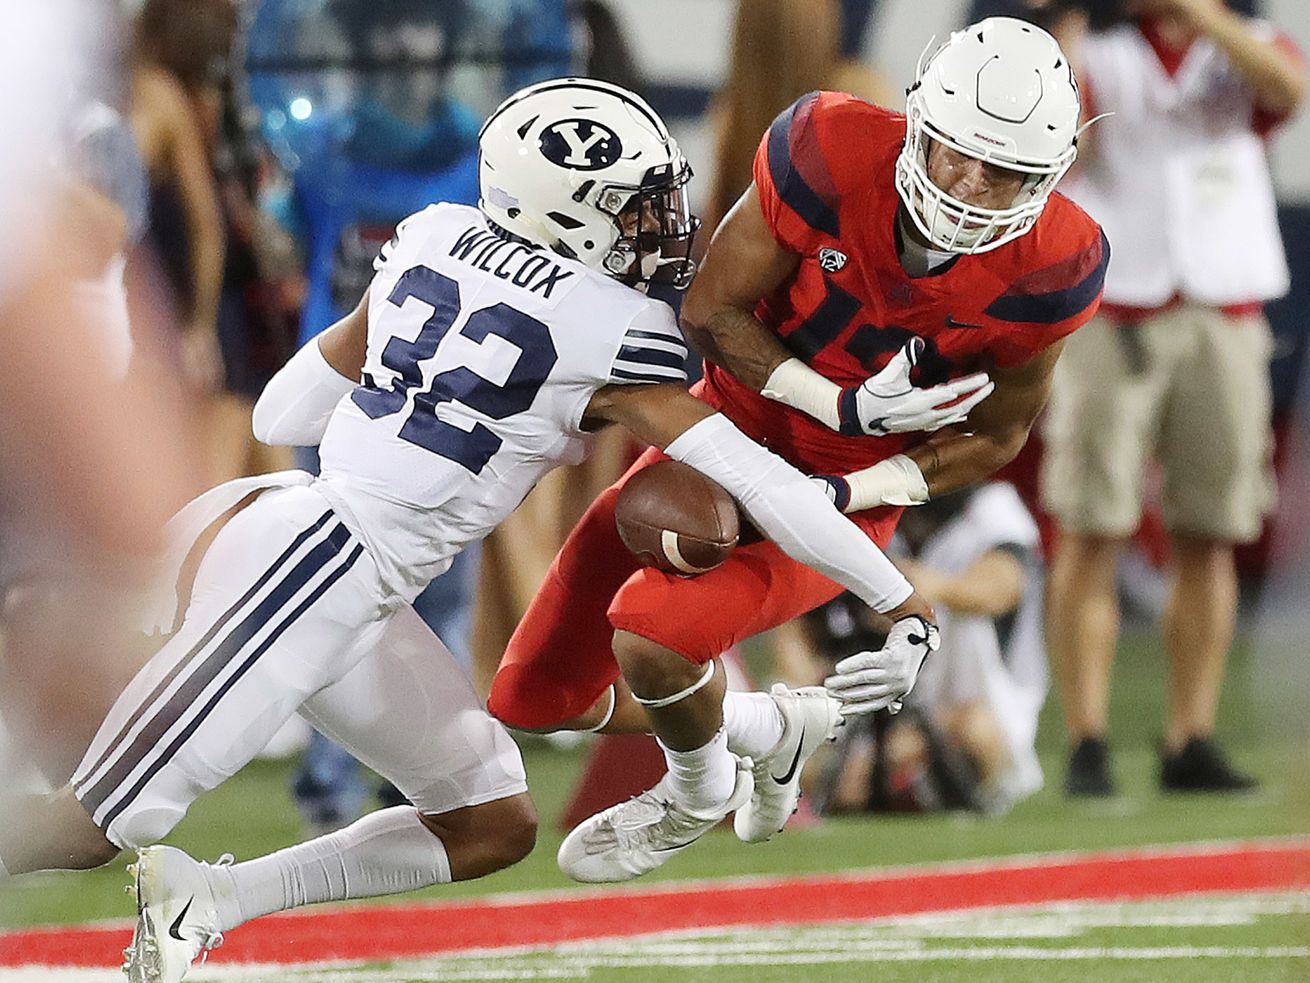 BYU defensive back Chris Wilcox defends Arizona wide receiver Shawn Poindexter (19) in Tucson, Arizona, on Saturday, Sept. 1, 2018. Wilcox has become a leader in the Cougars' secondary.